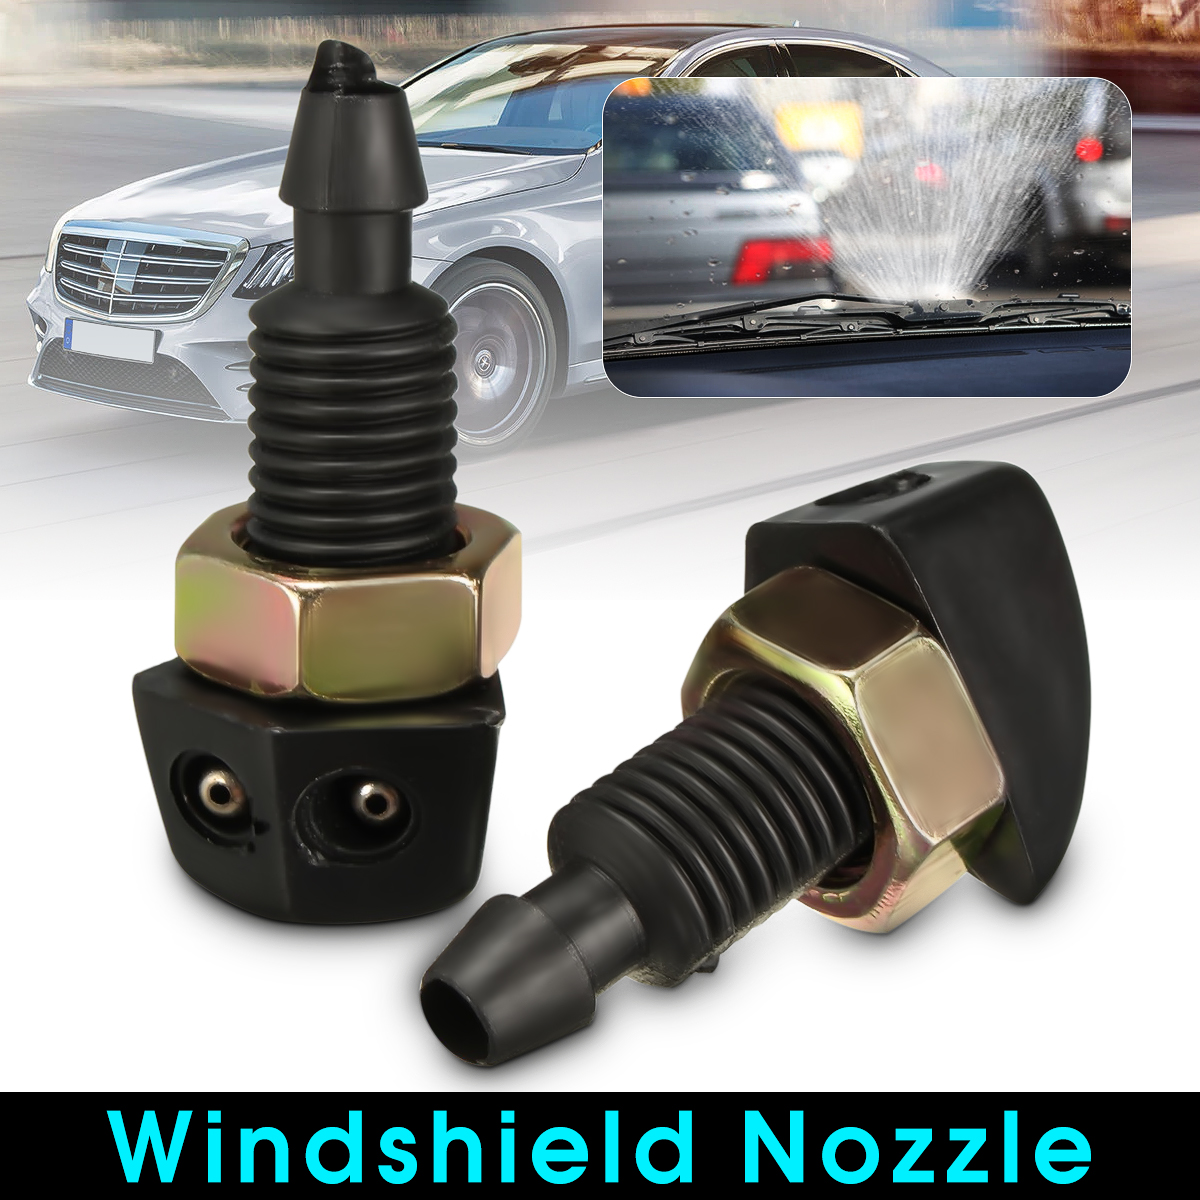 2 pcs Universal Car Vehicle Front Windshield Washer Sprayer Nozzle Plastic Black